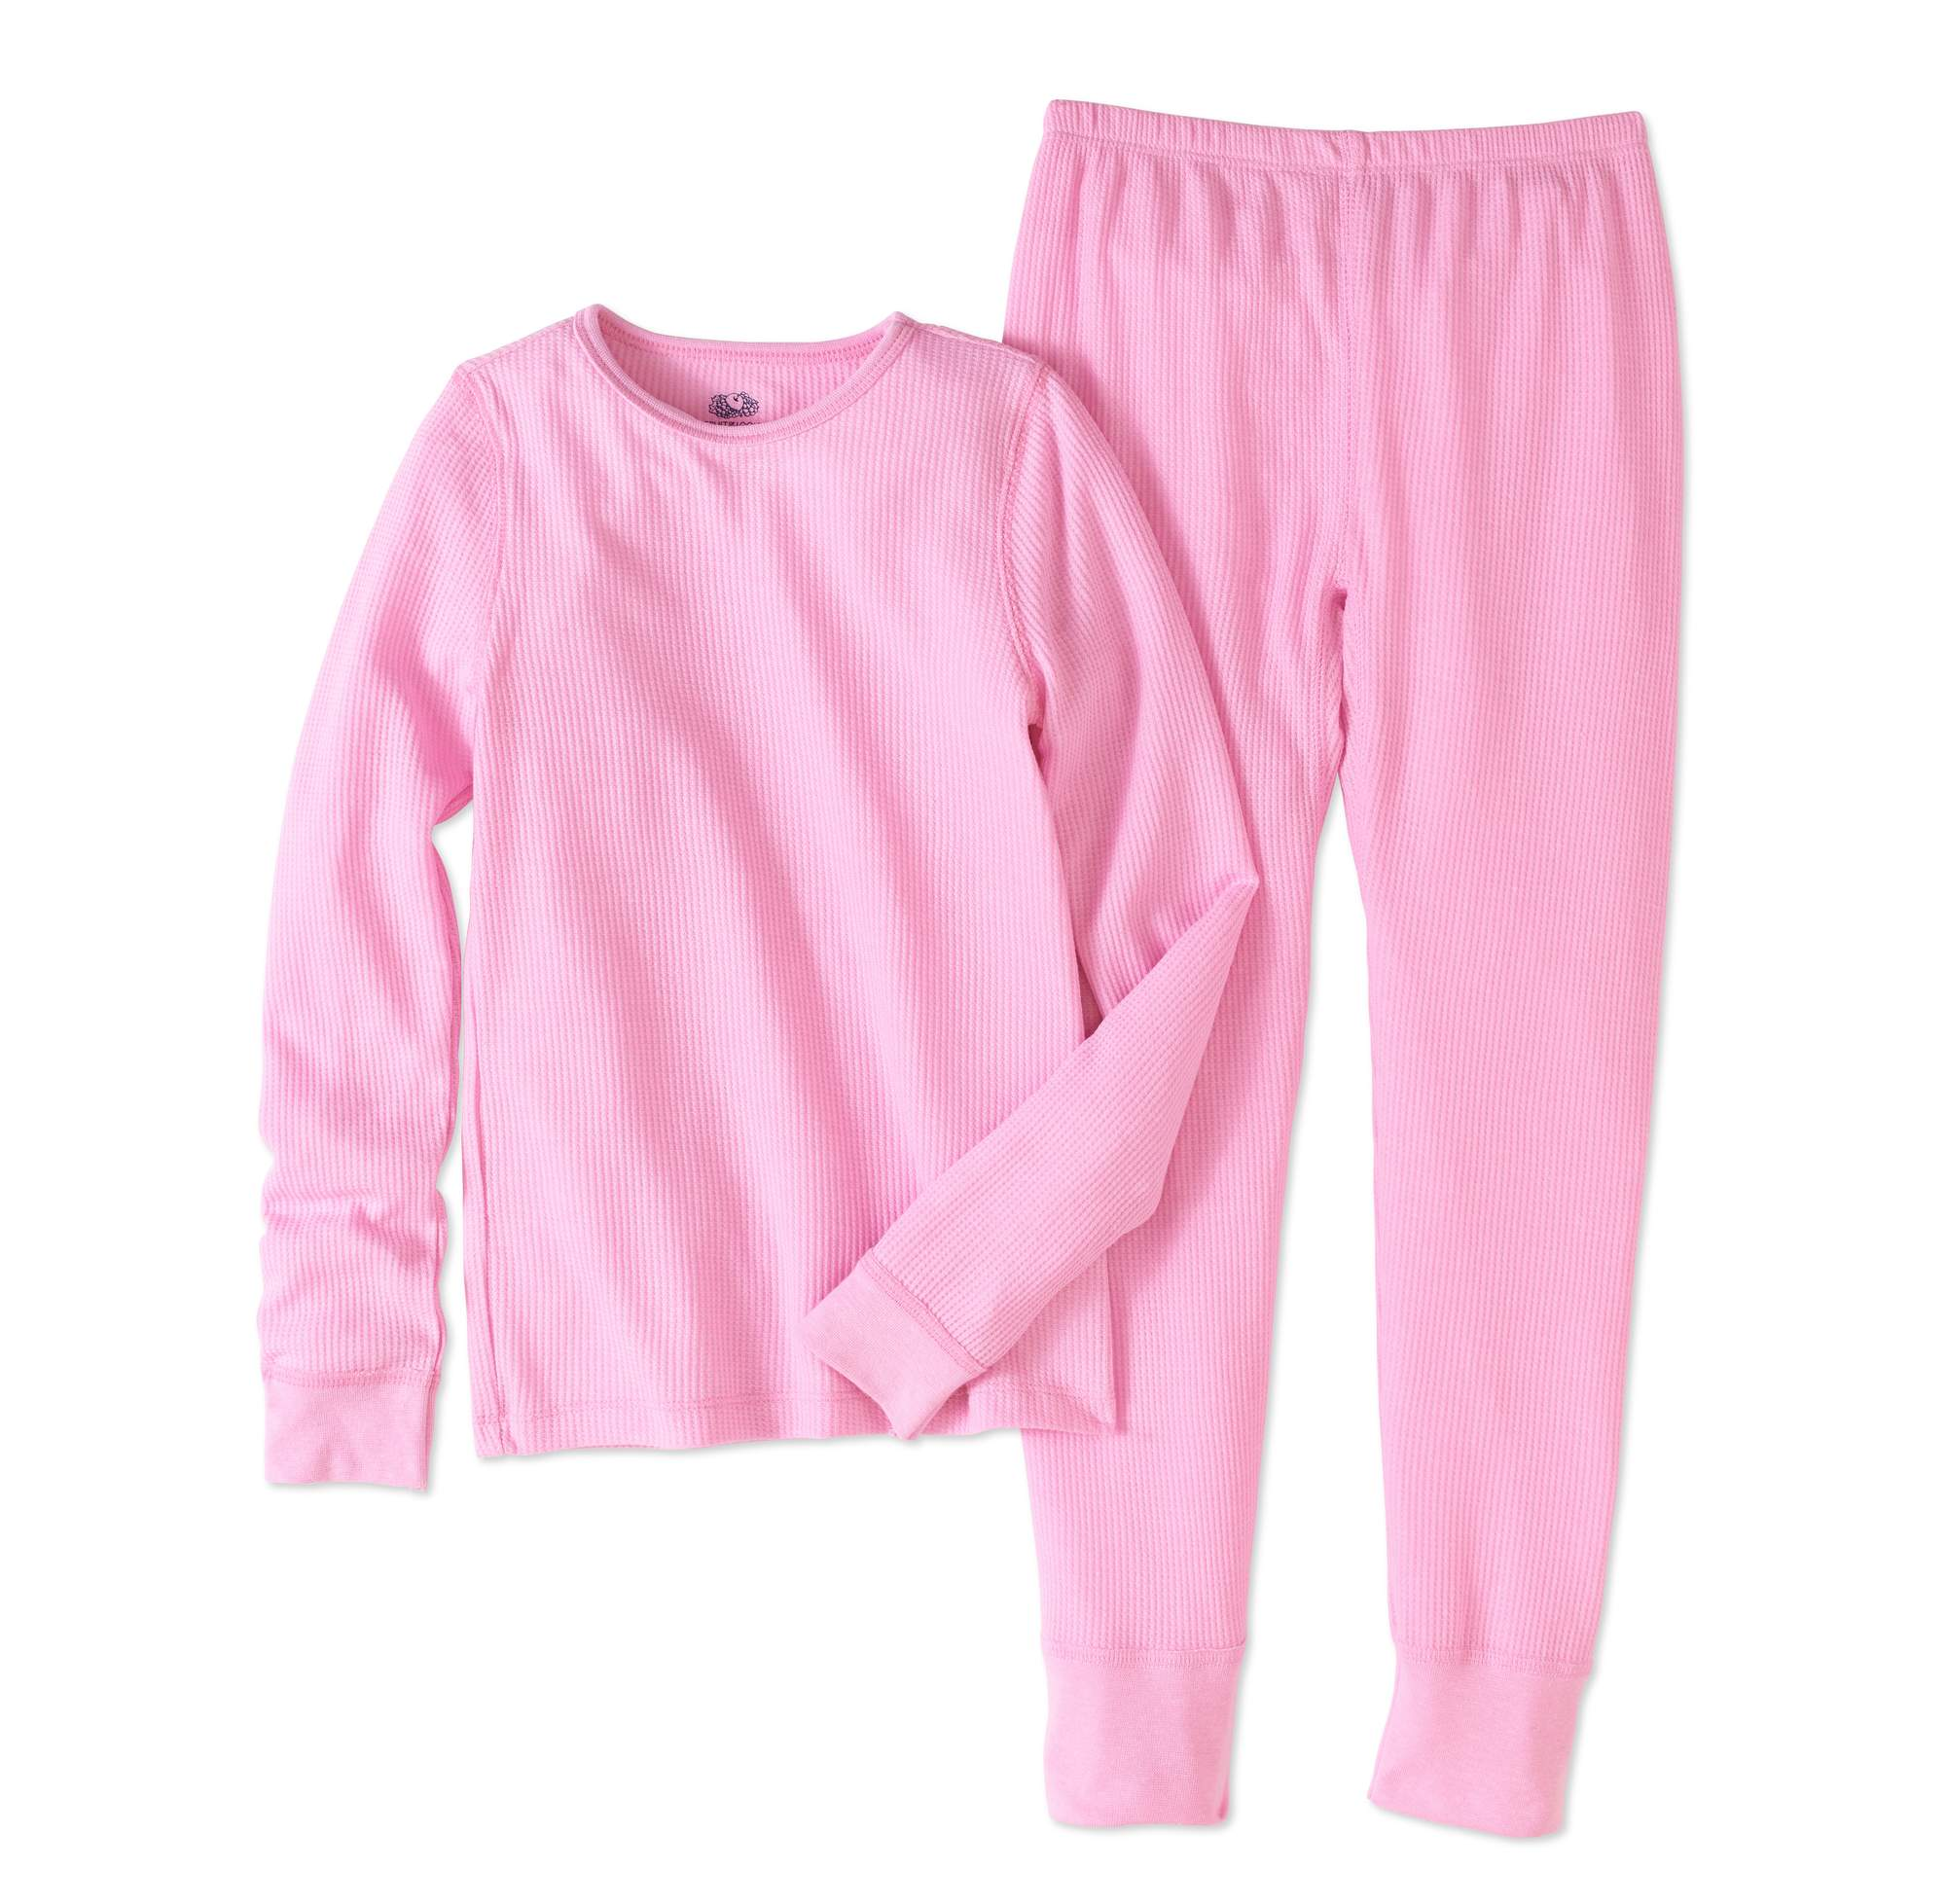 Fruit of the Loom Girls' Soft Waffle Thermal Underwear Set by Generic